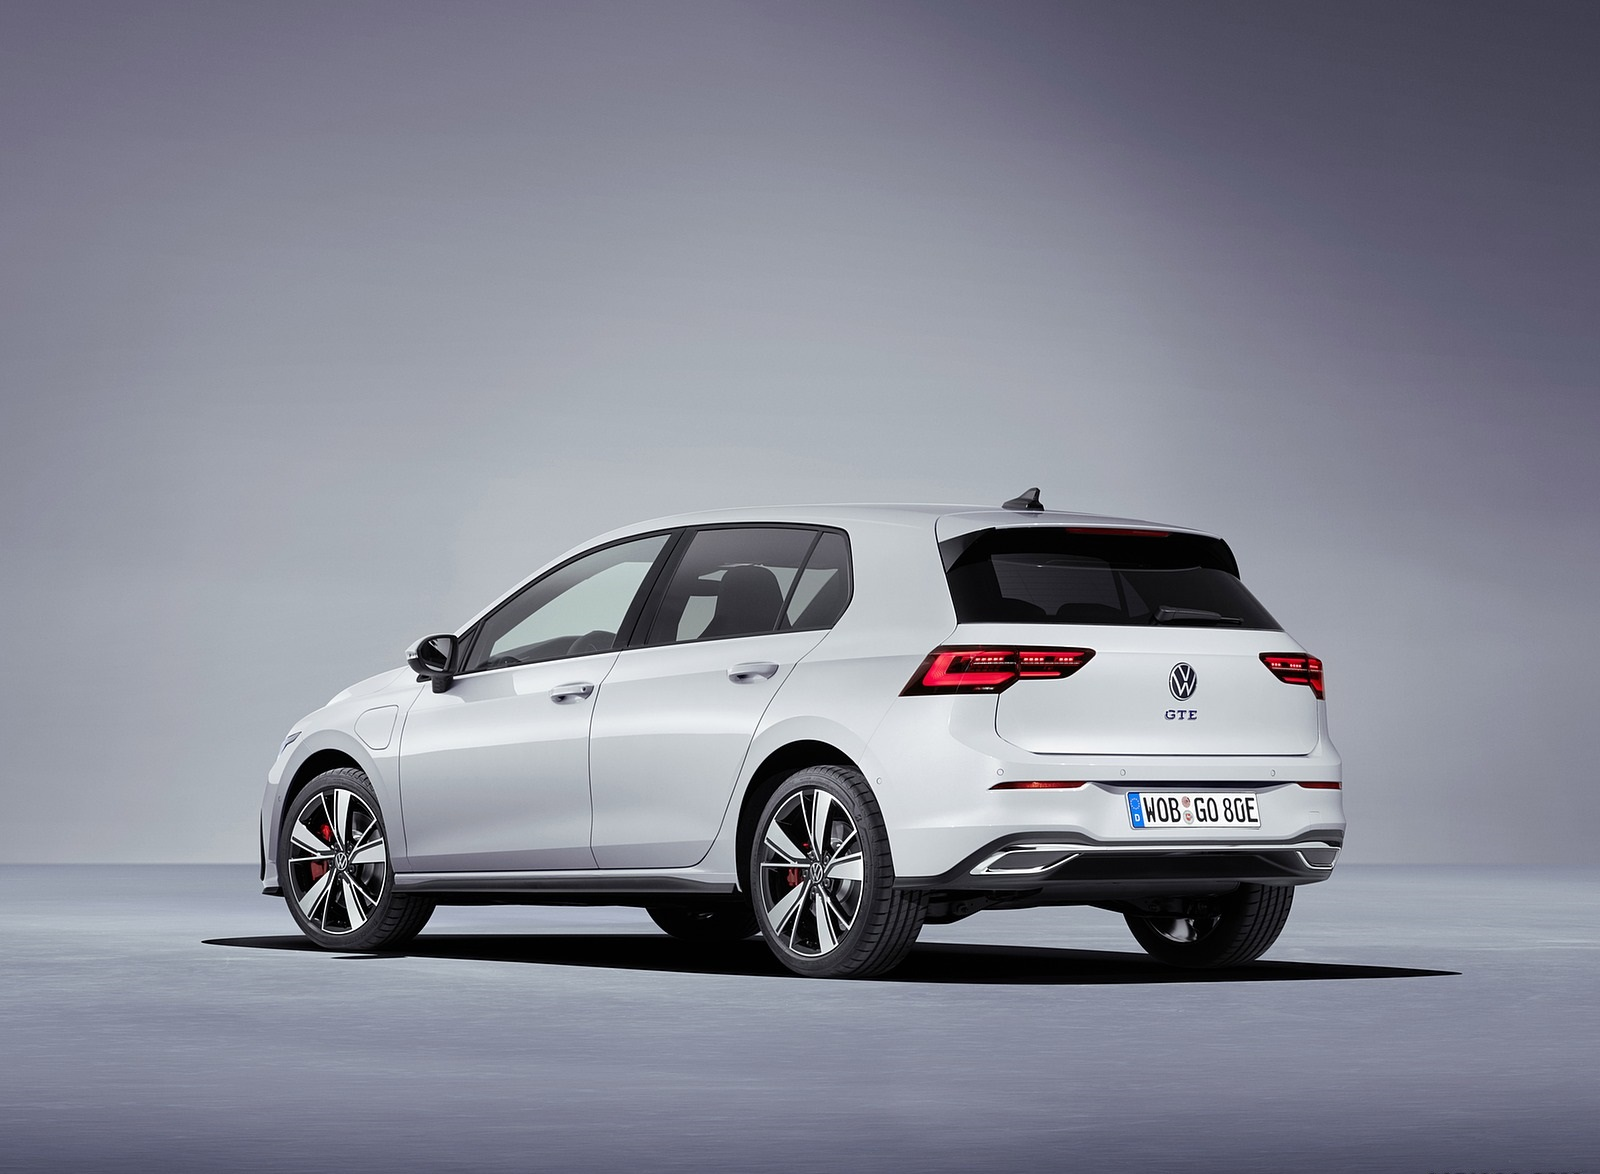 2021 Volkswagen Golf GTE Rear Three-Quarter Wallpapers (6)